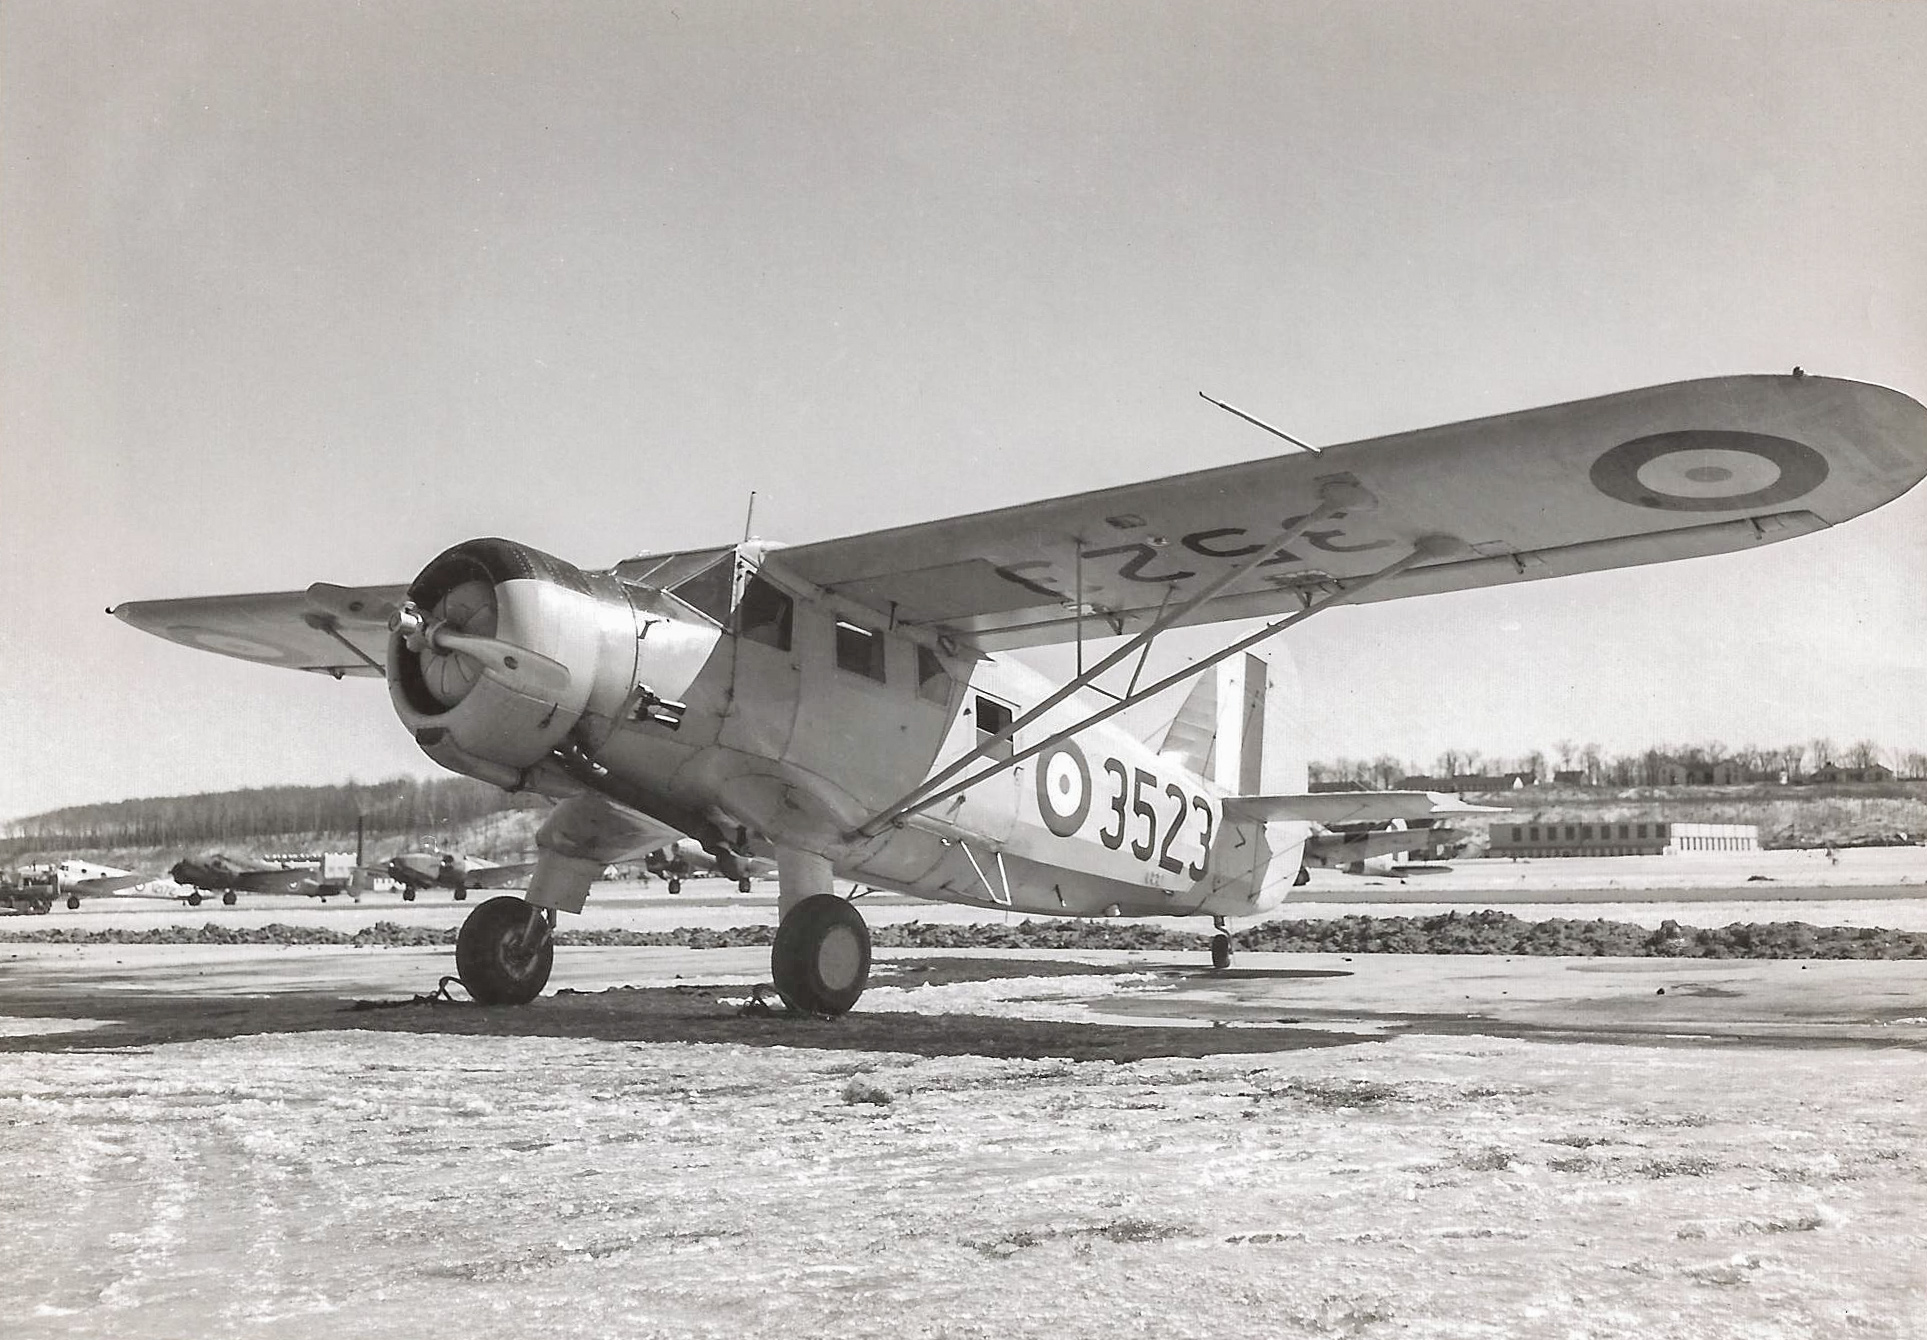 Pristine Looking Norseman 3523 At Rest Rockcliffe An Anson V Beech 18